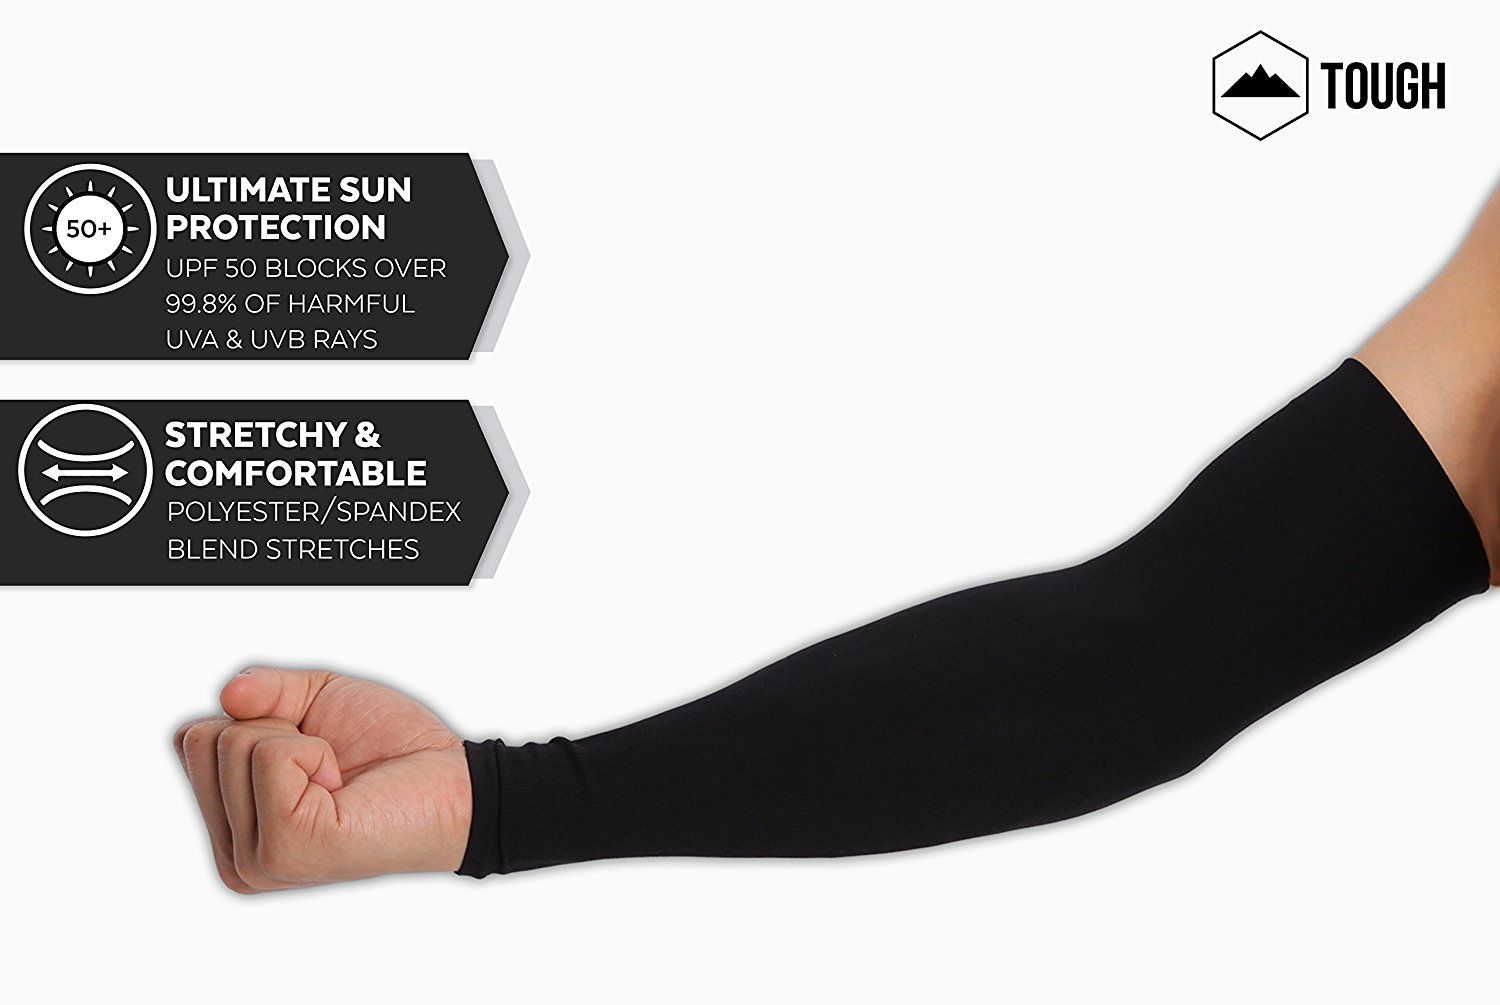 Gifts for Cyclists Women - UV Protection Cooling Arm Sleeves - UPF 50 Long  Sun Sleeves for Men  GiftsforCyclistsWomen 096b05903